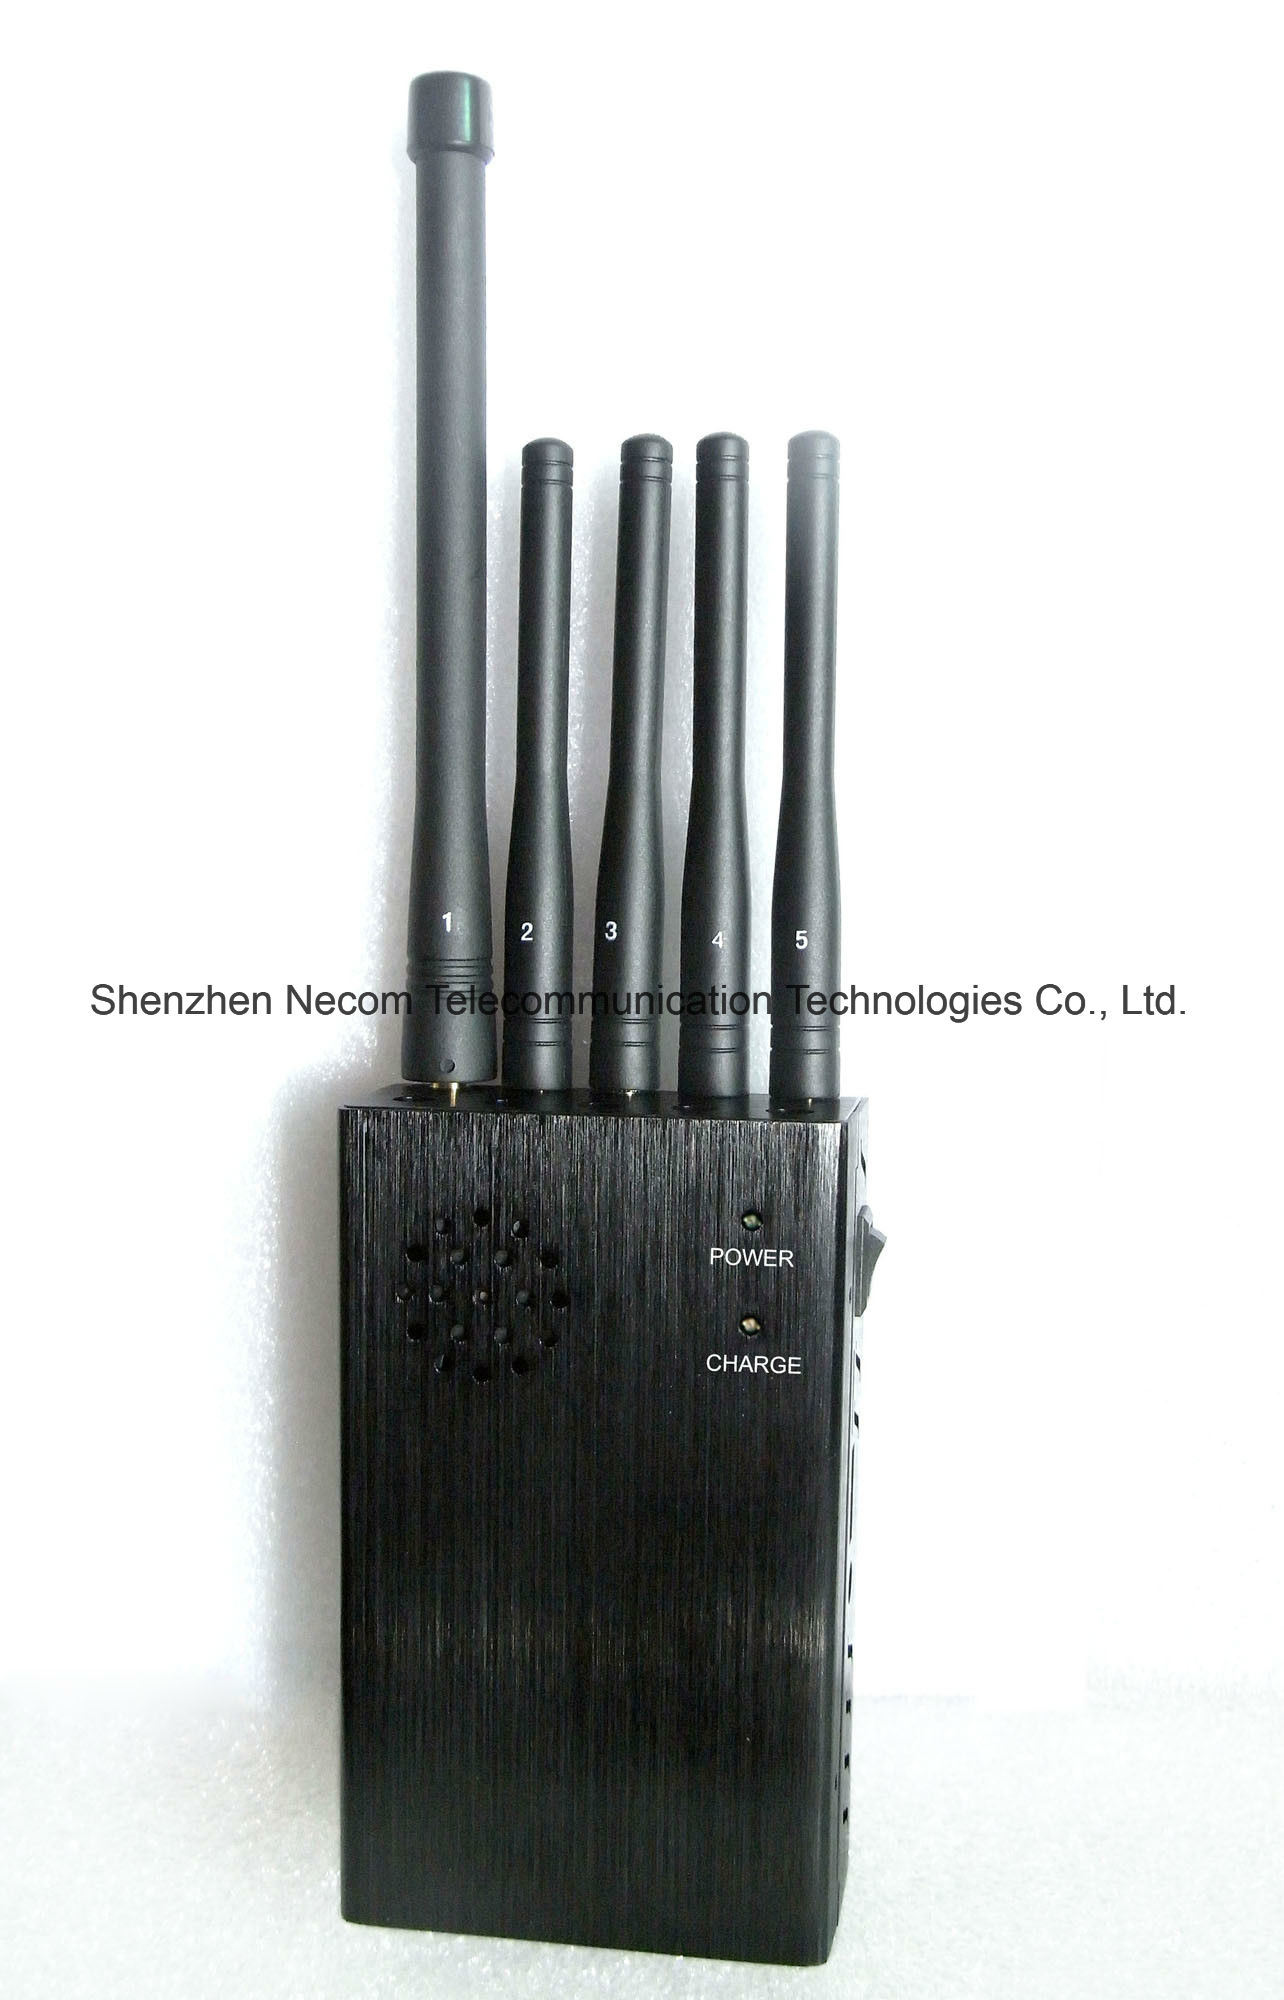 jammerjab kirby whitten rd - China 5 Antennas Handheld WiFi GPS Cell Phone Jammer, 5-Band Portable WiFi Bluetooth Wireless Video Cell Phone Jammer - China Portable Cellphone Jammer, GSM Jammer